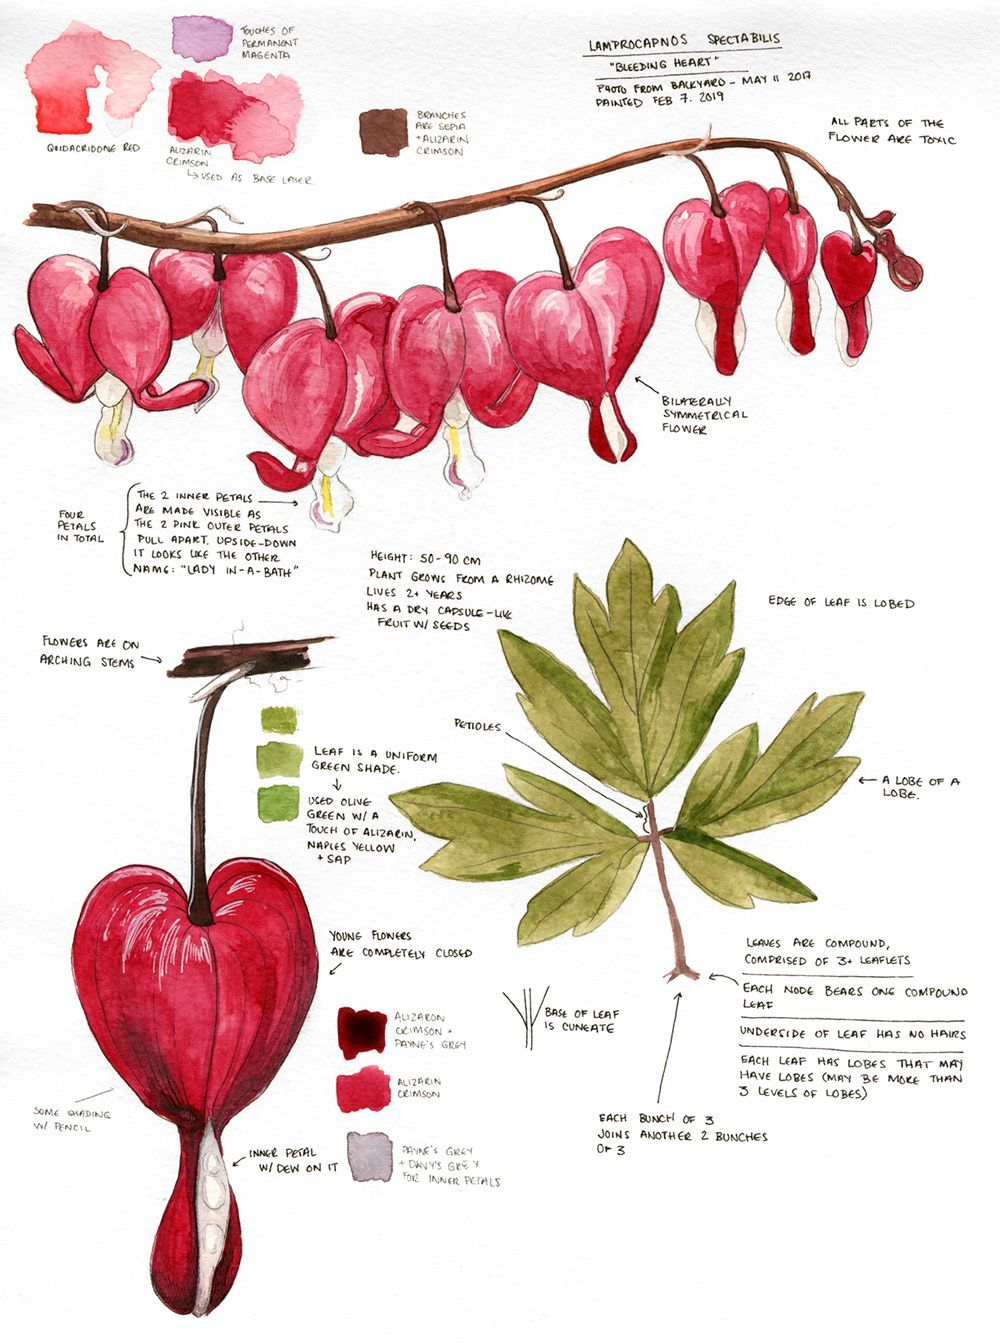 Botanical Sketchbook Bleeding Heart Lamprocapnos Spectabilis In 2020 Botanical Sketchbook Bleeding Heart Sketch Book